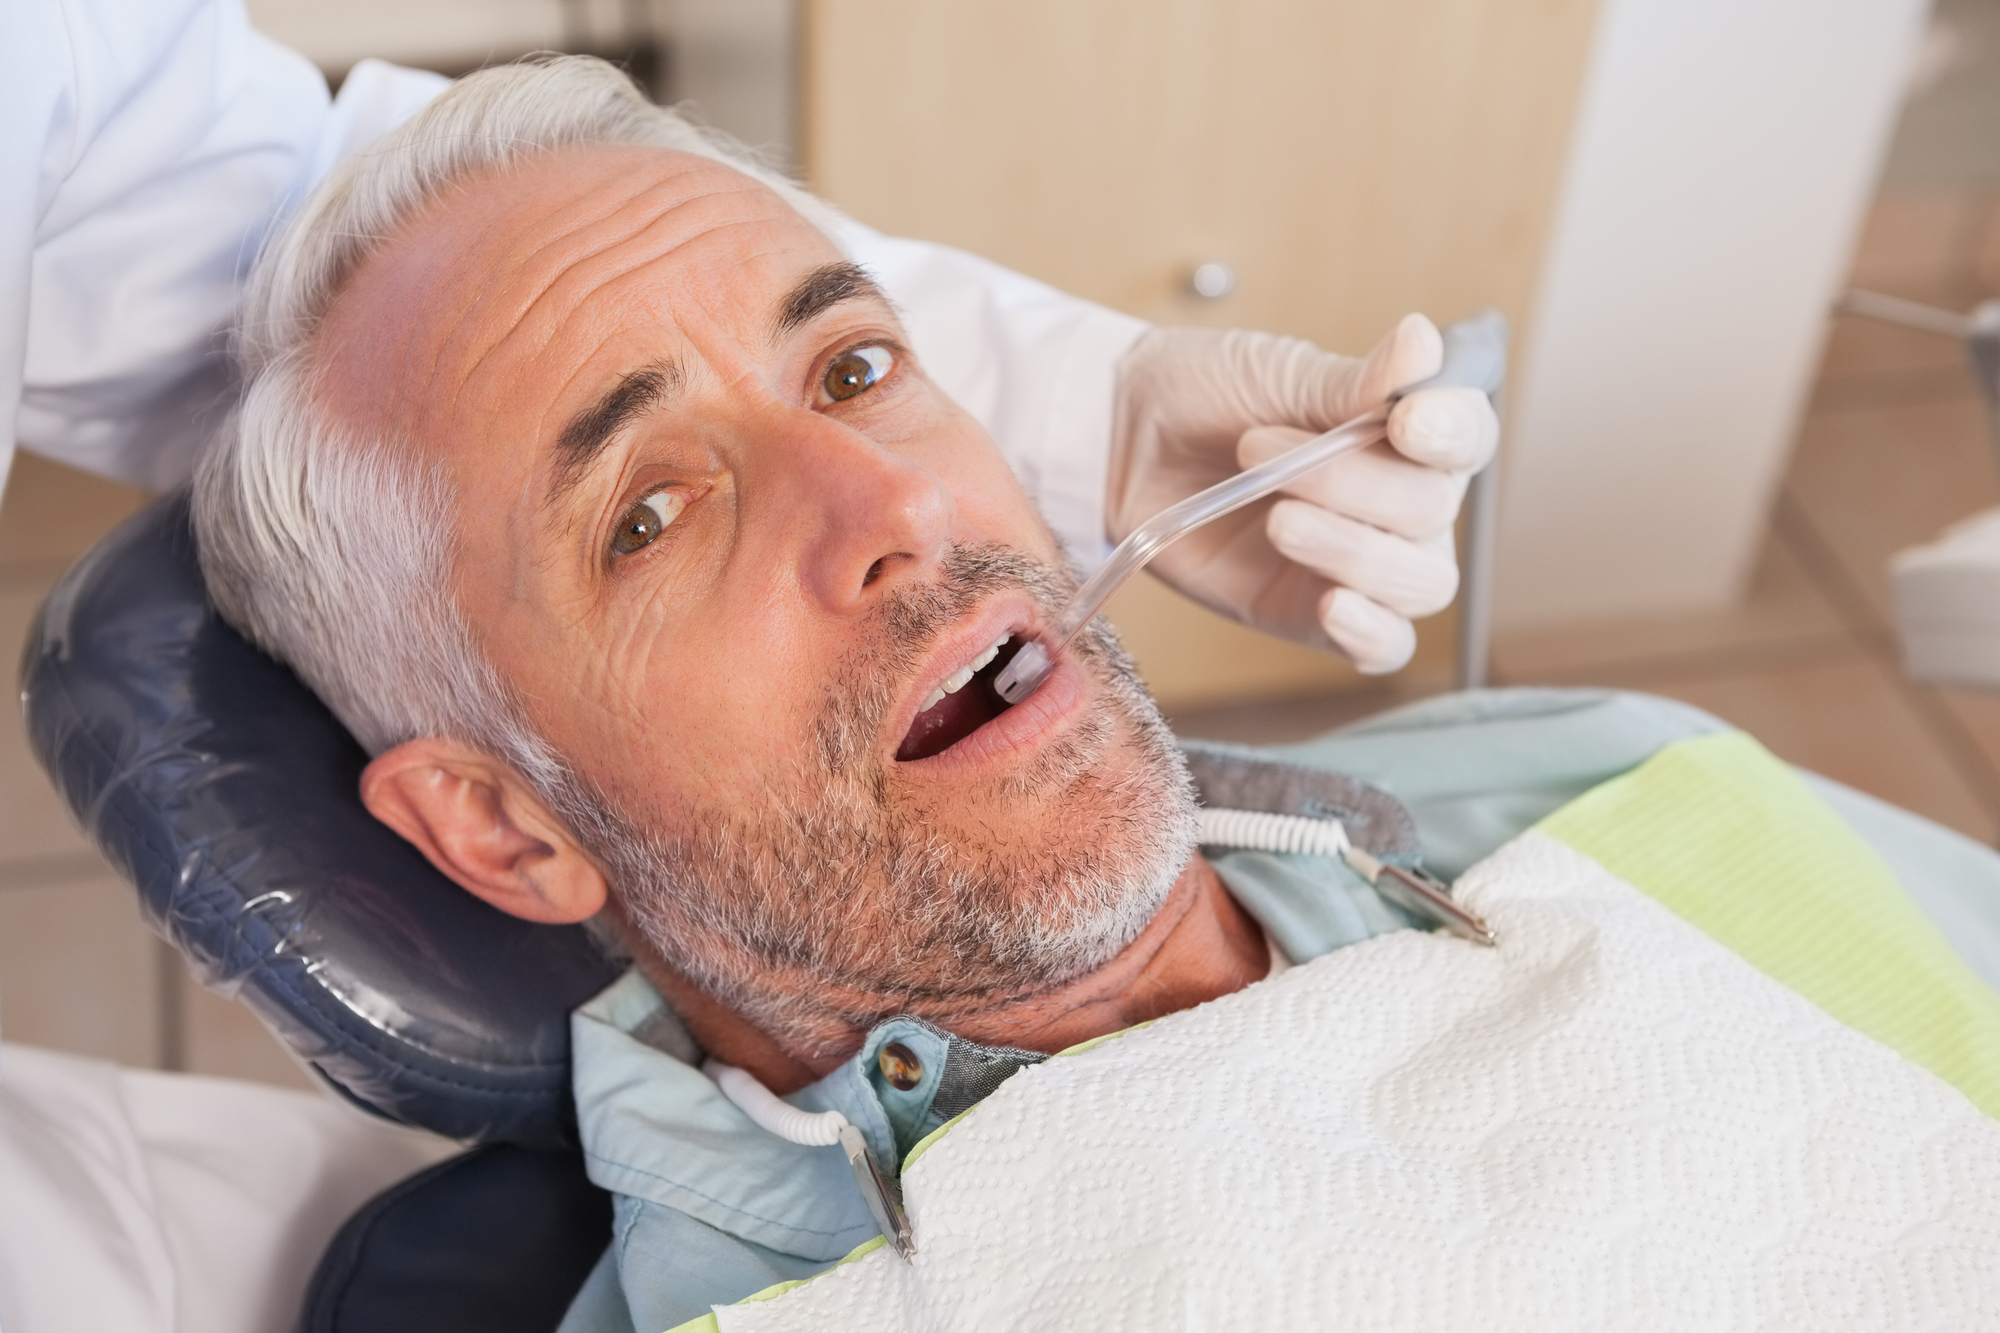 Where is the best emergency dentist north palm beach?